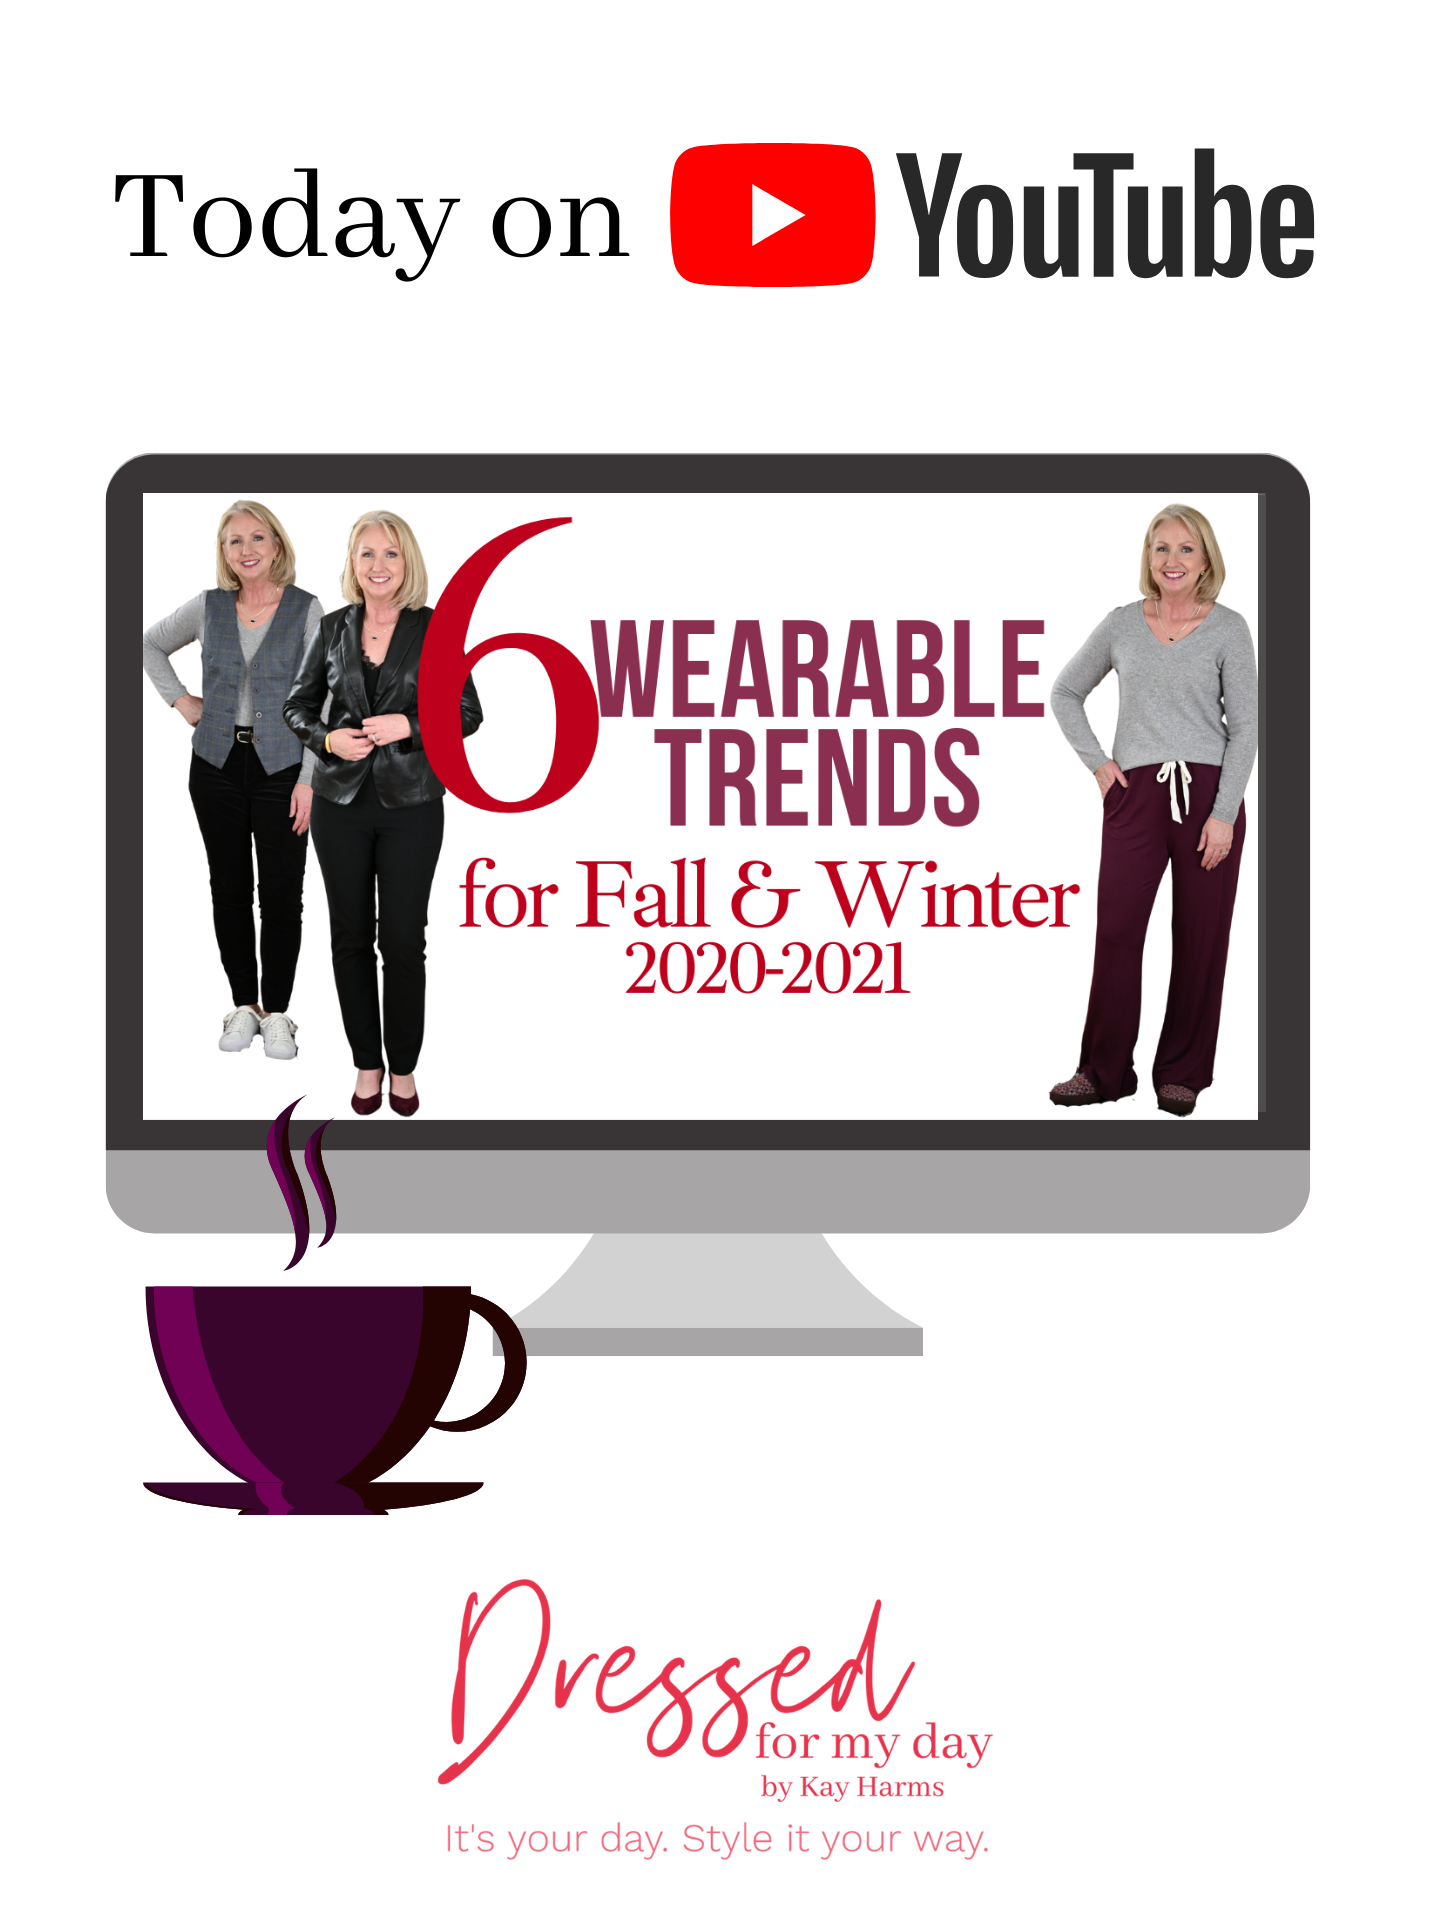 6 Wearable Trends for Fall & Winter